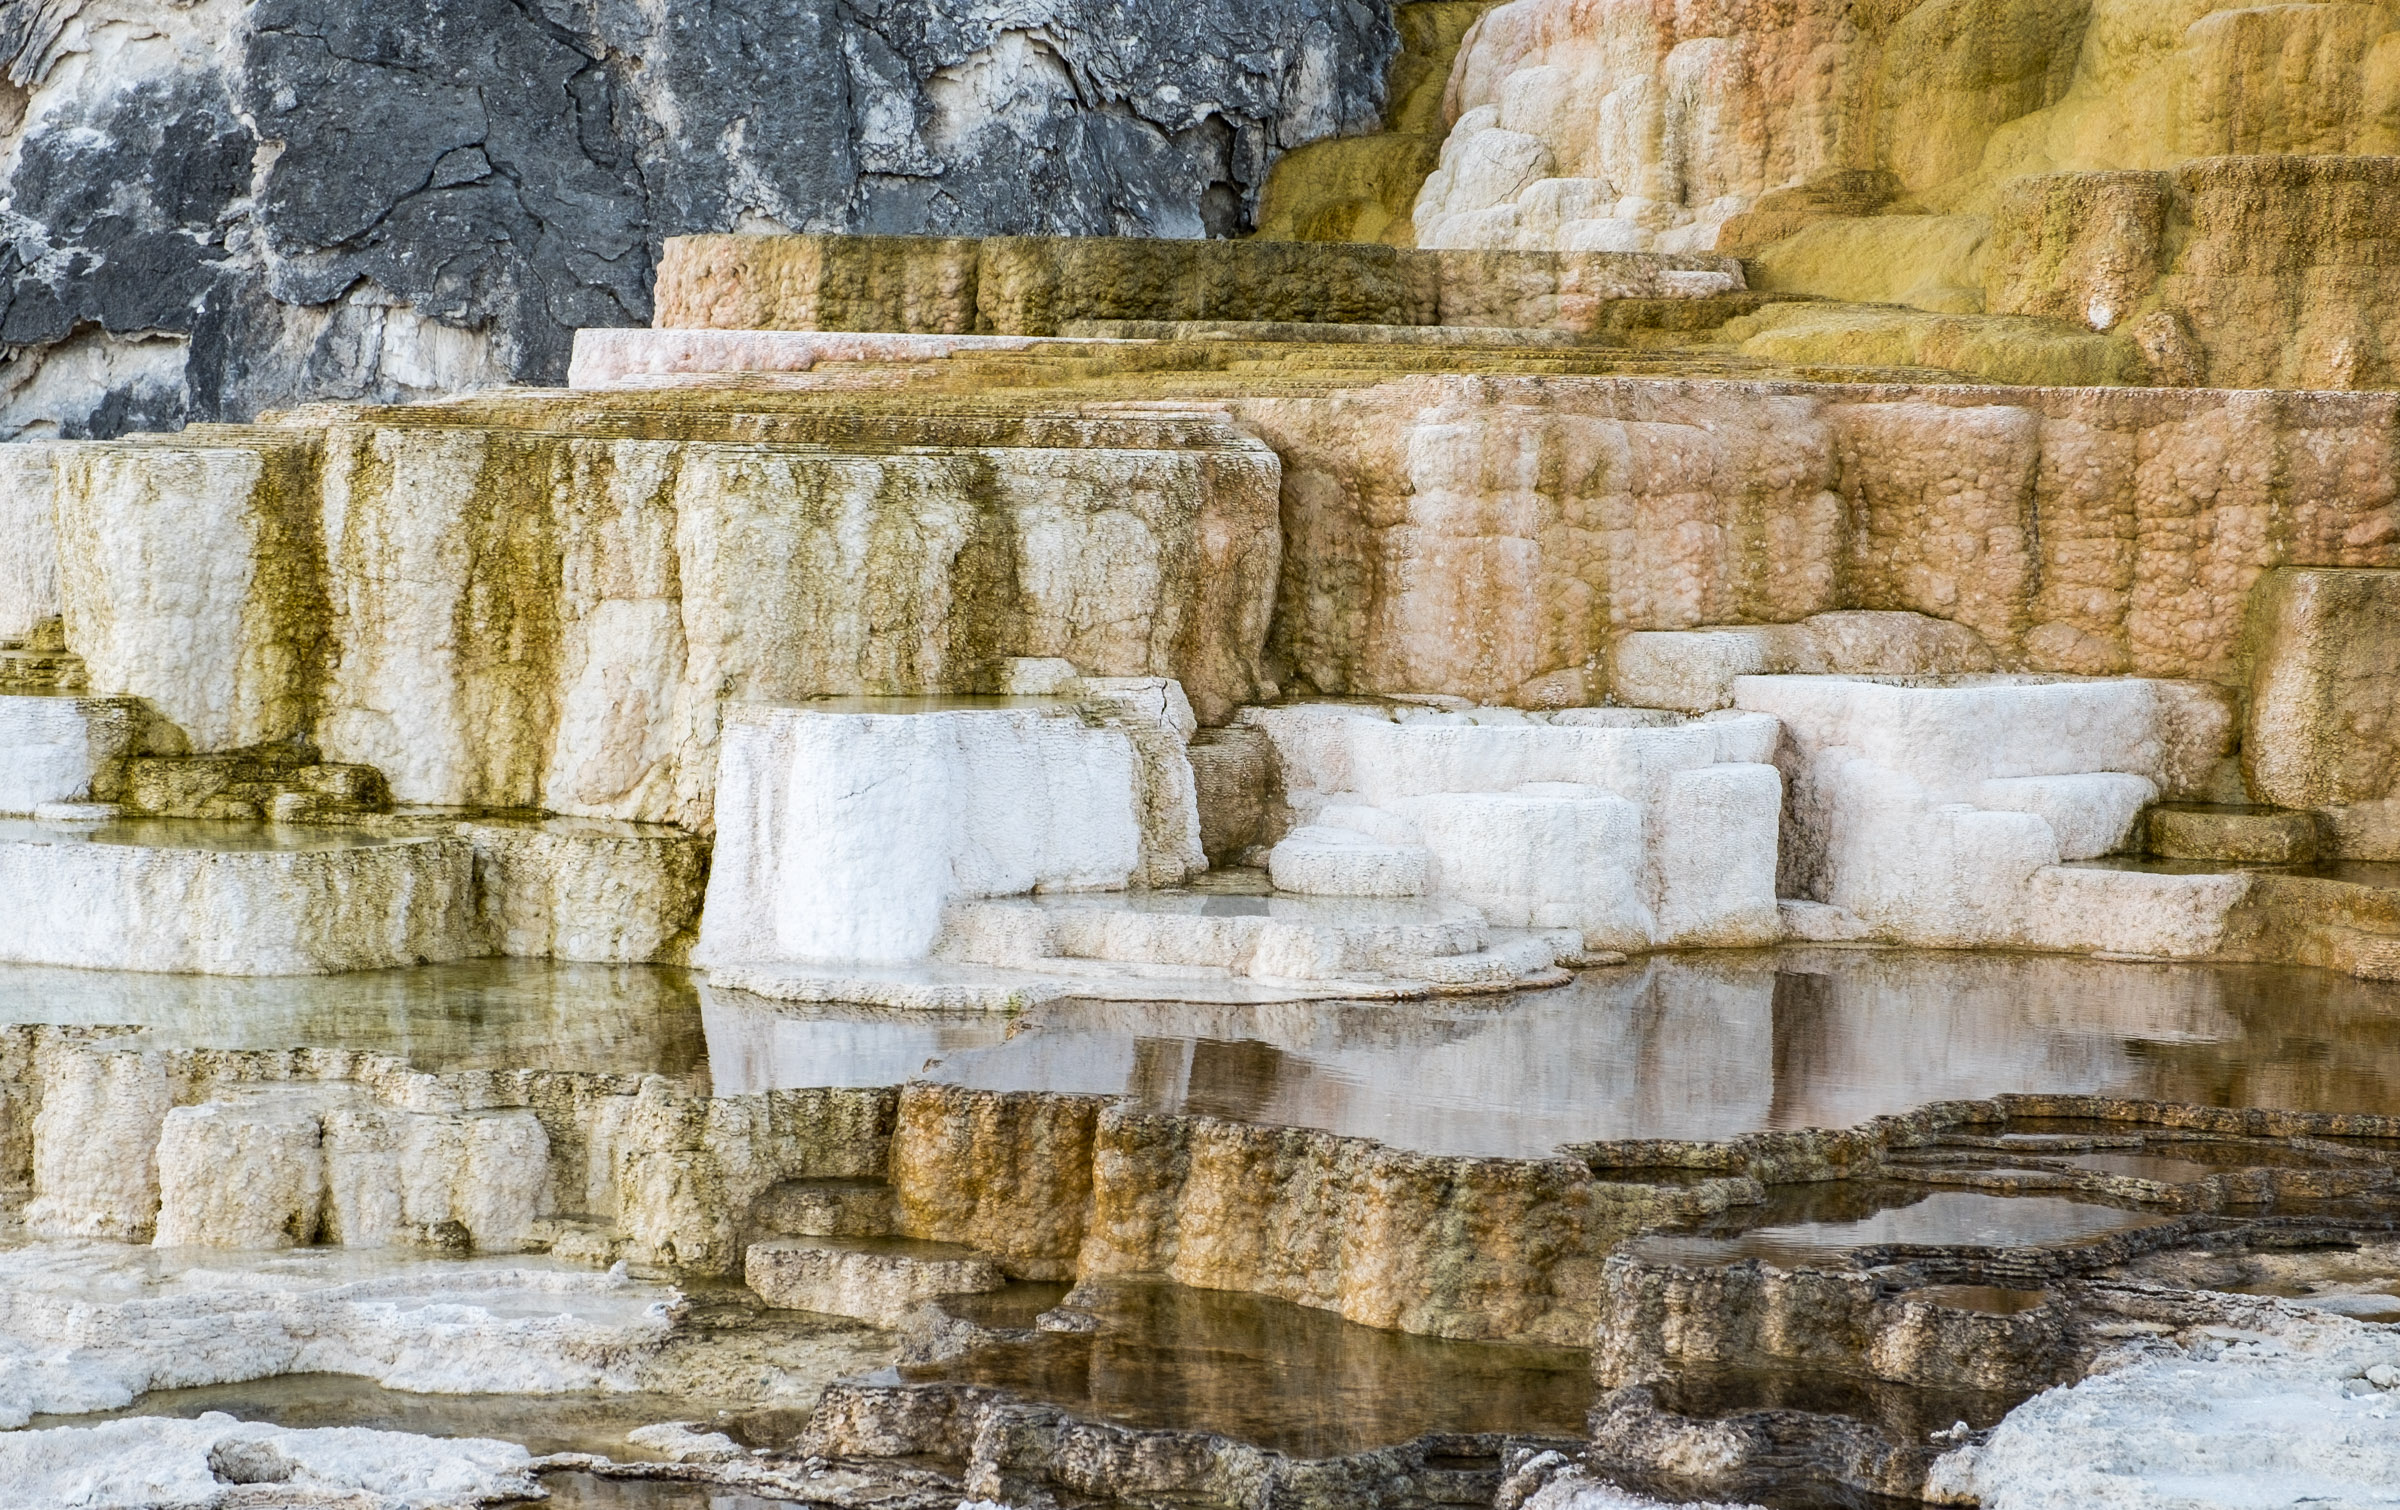 Travertine terraces at Mammoth Hot Springs in Yellowstone National Park.